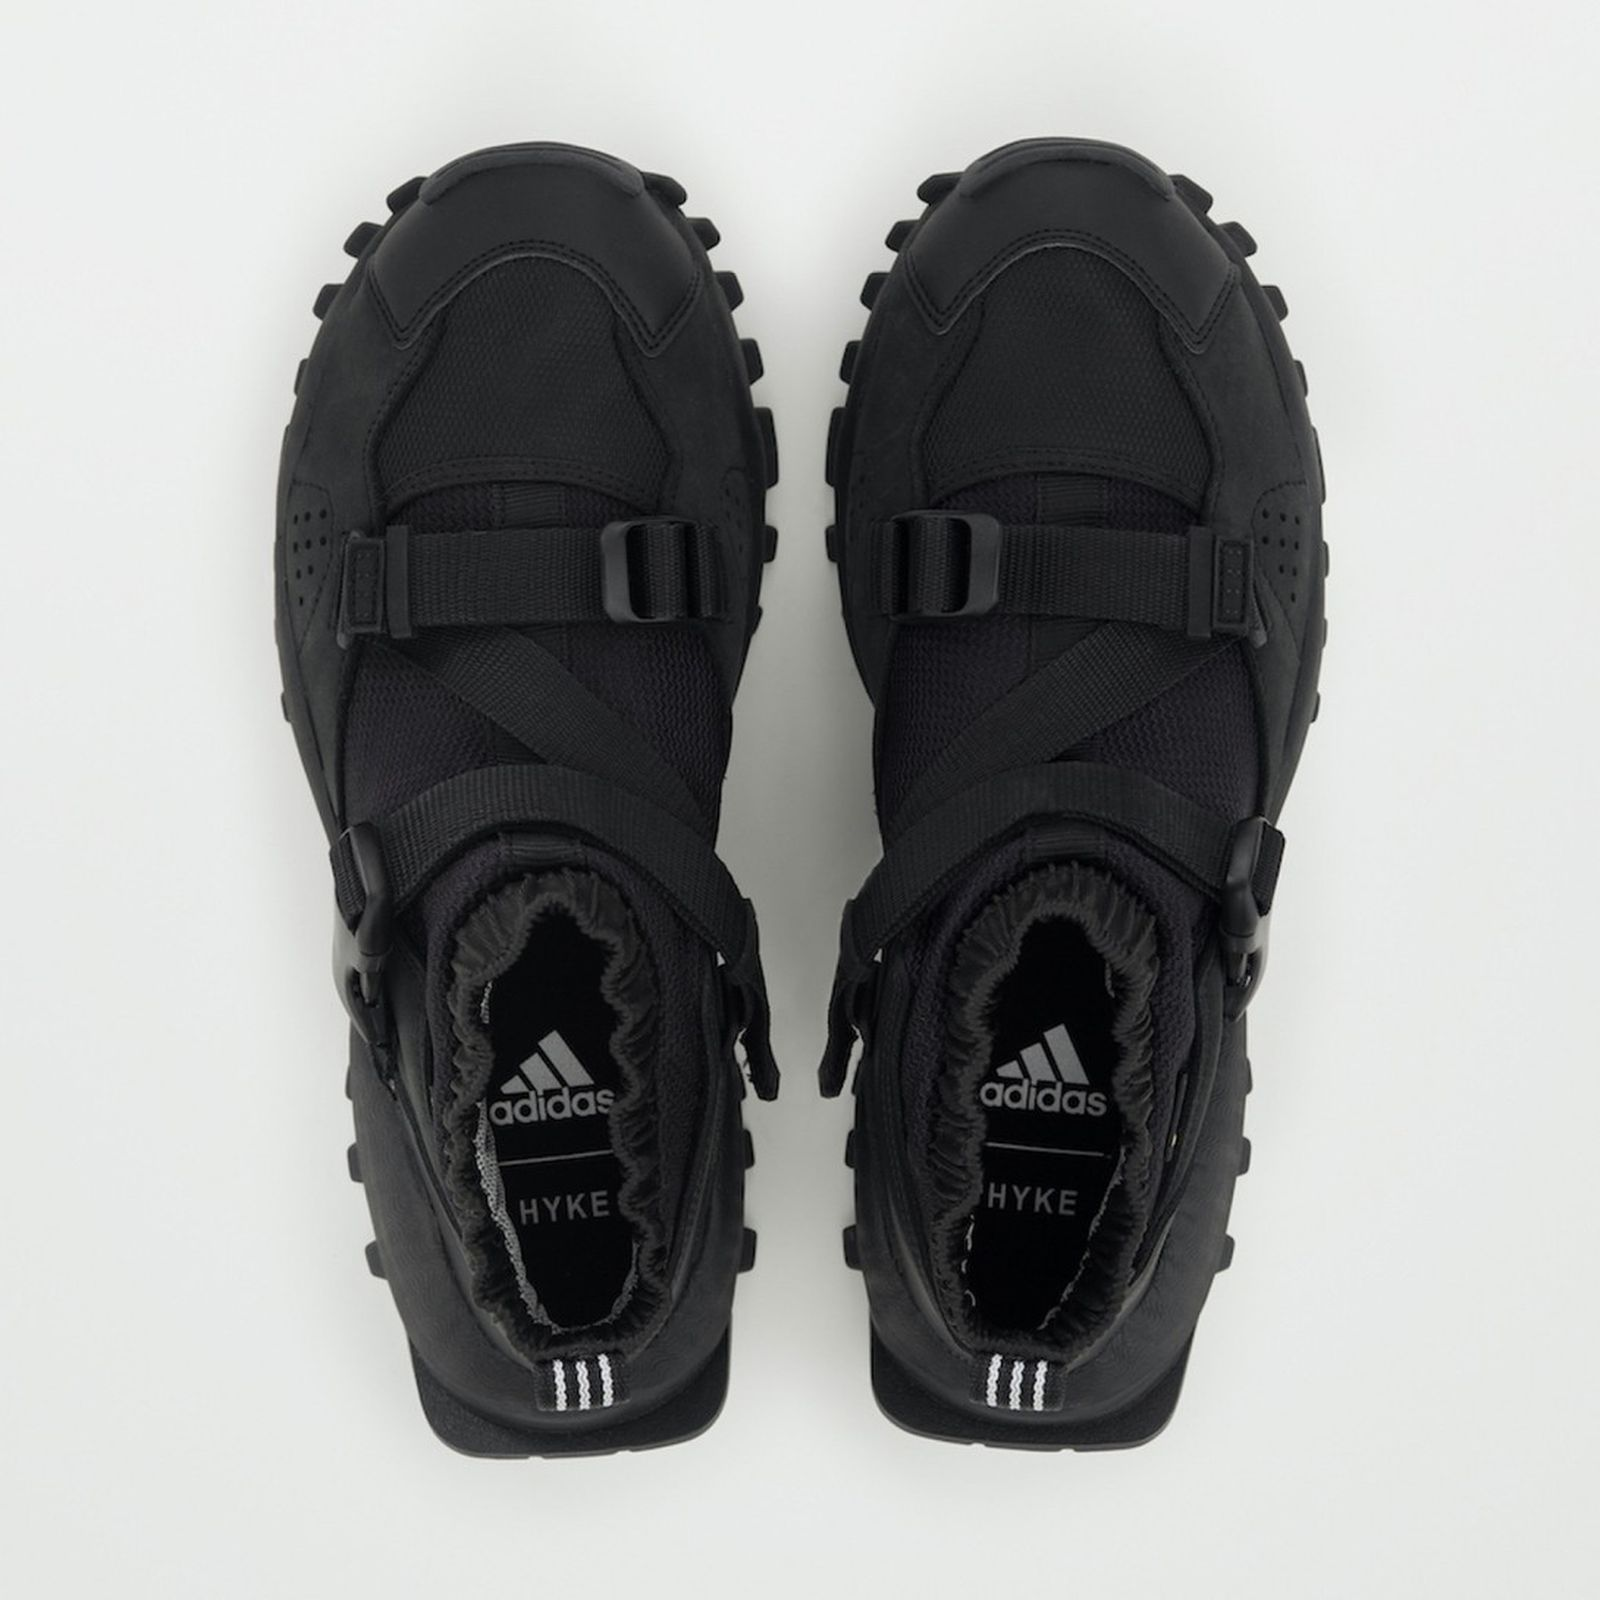 hyke-adidas-collab-fw20-sneakers-9